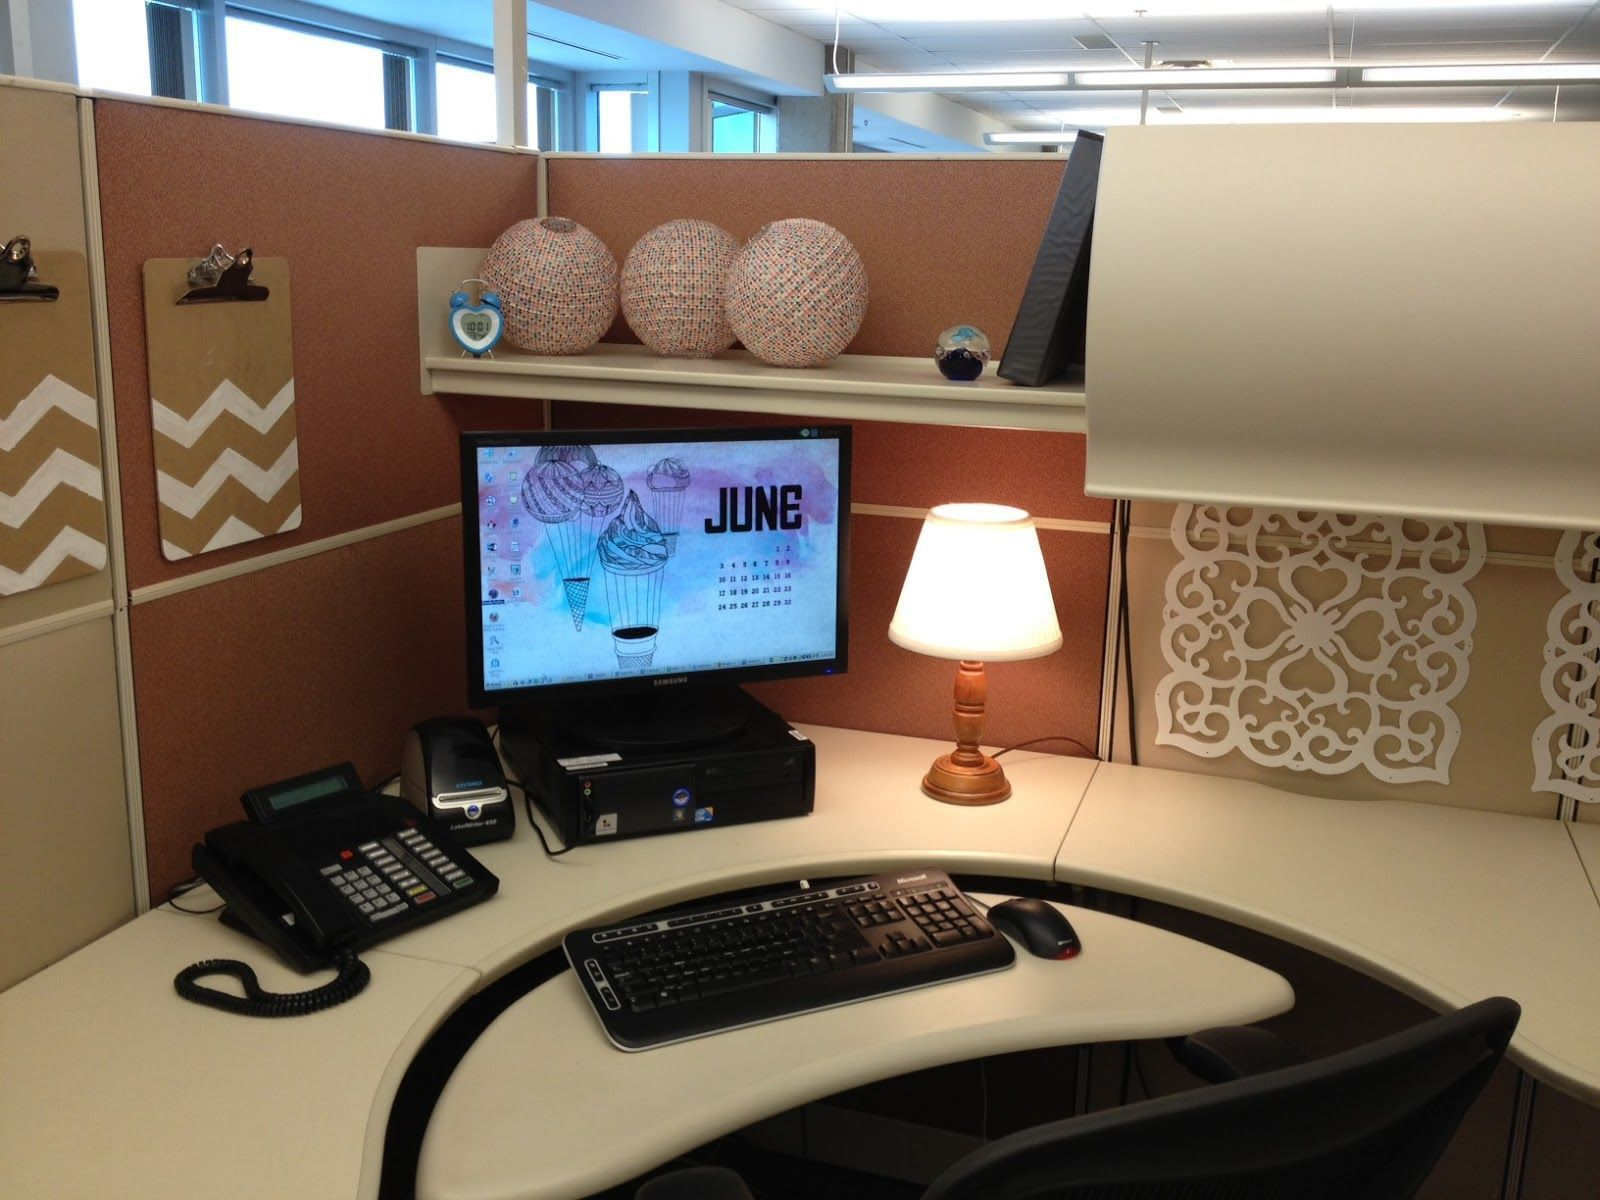 20 Cubicle Decor Ideas To Make Your Office Style Work As -9849